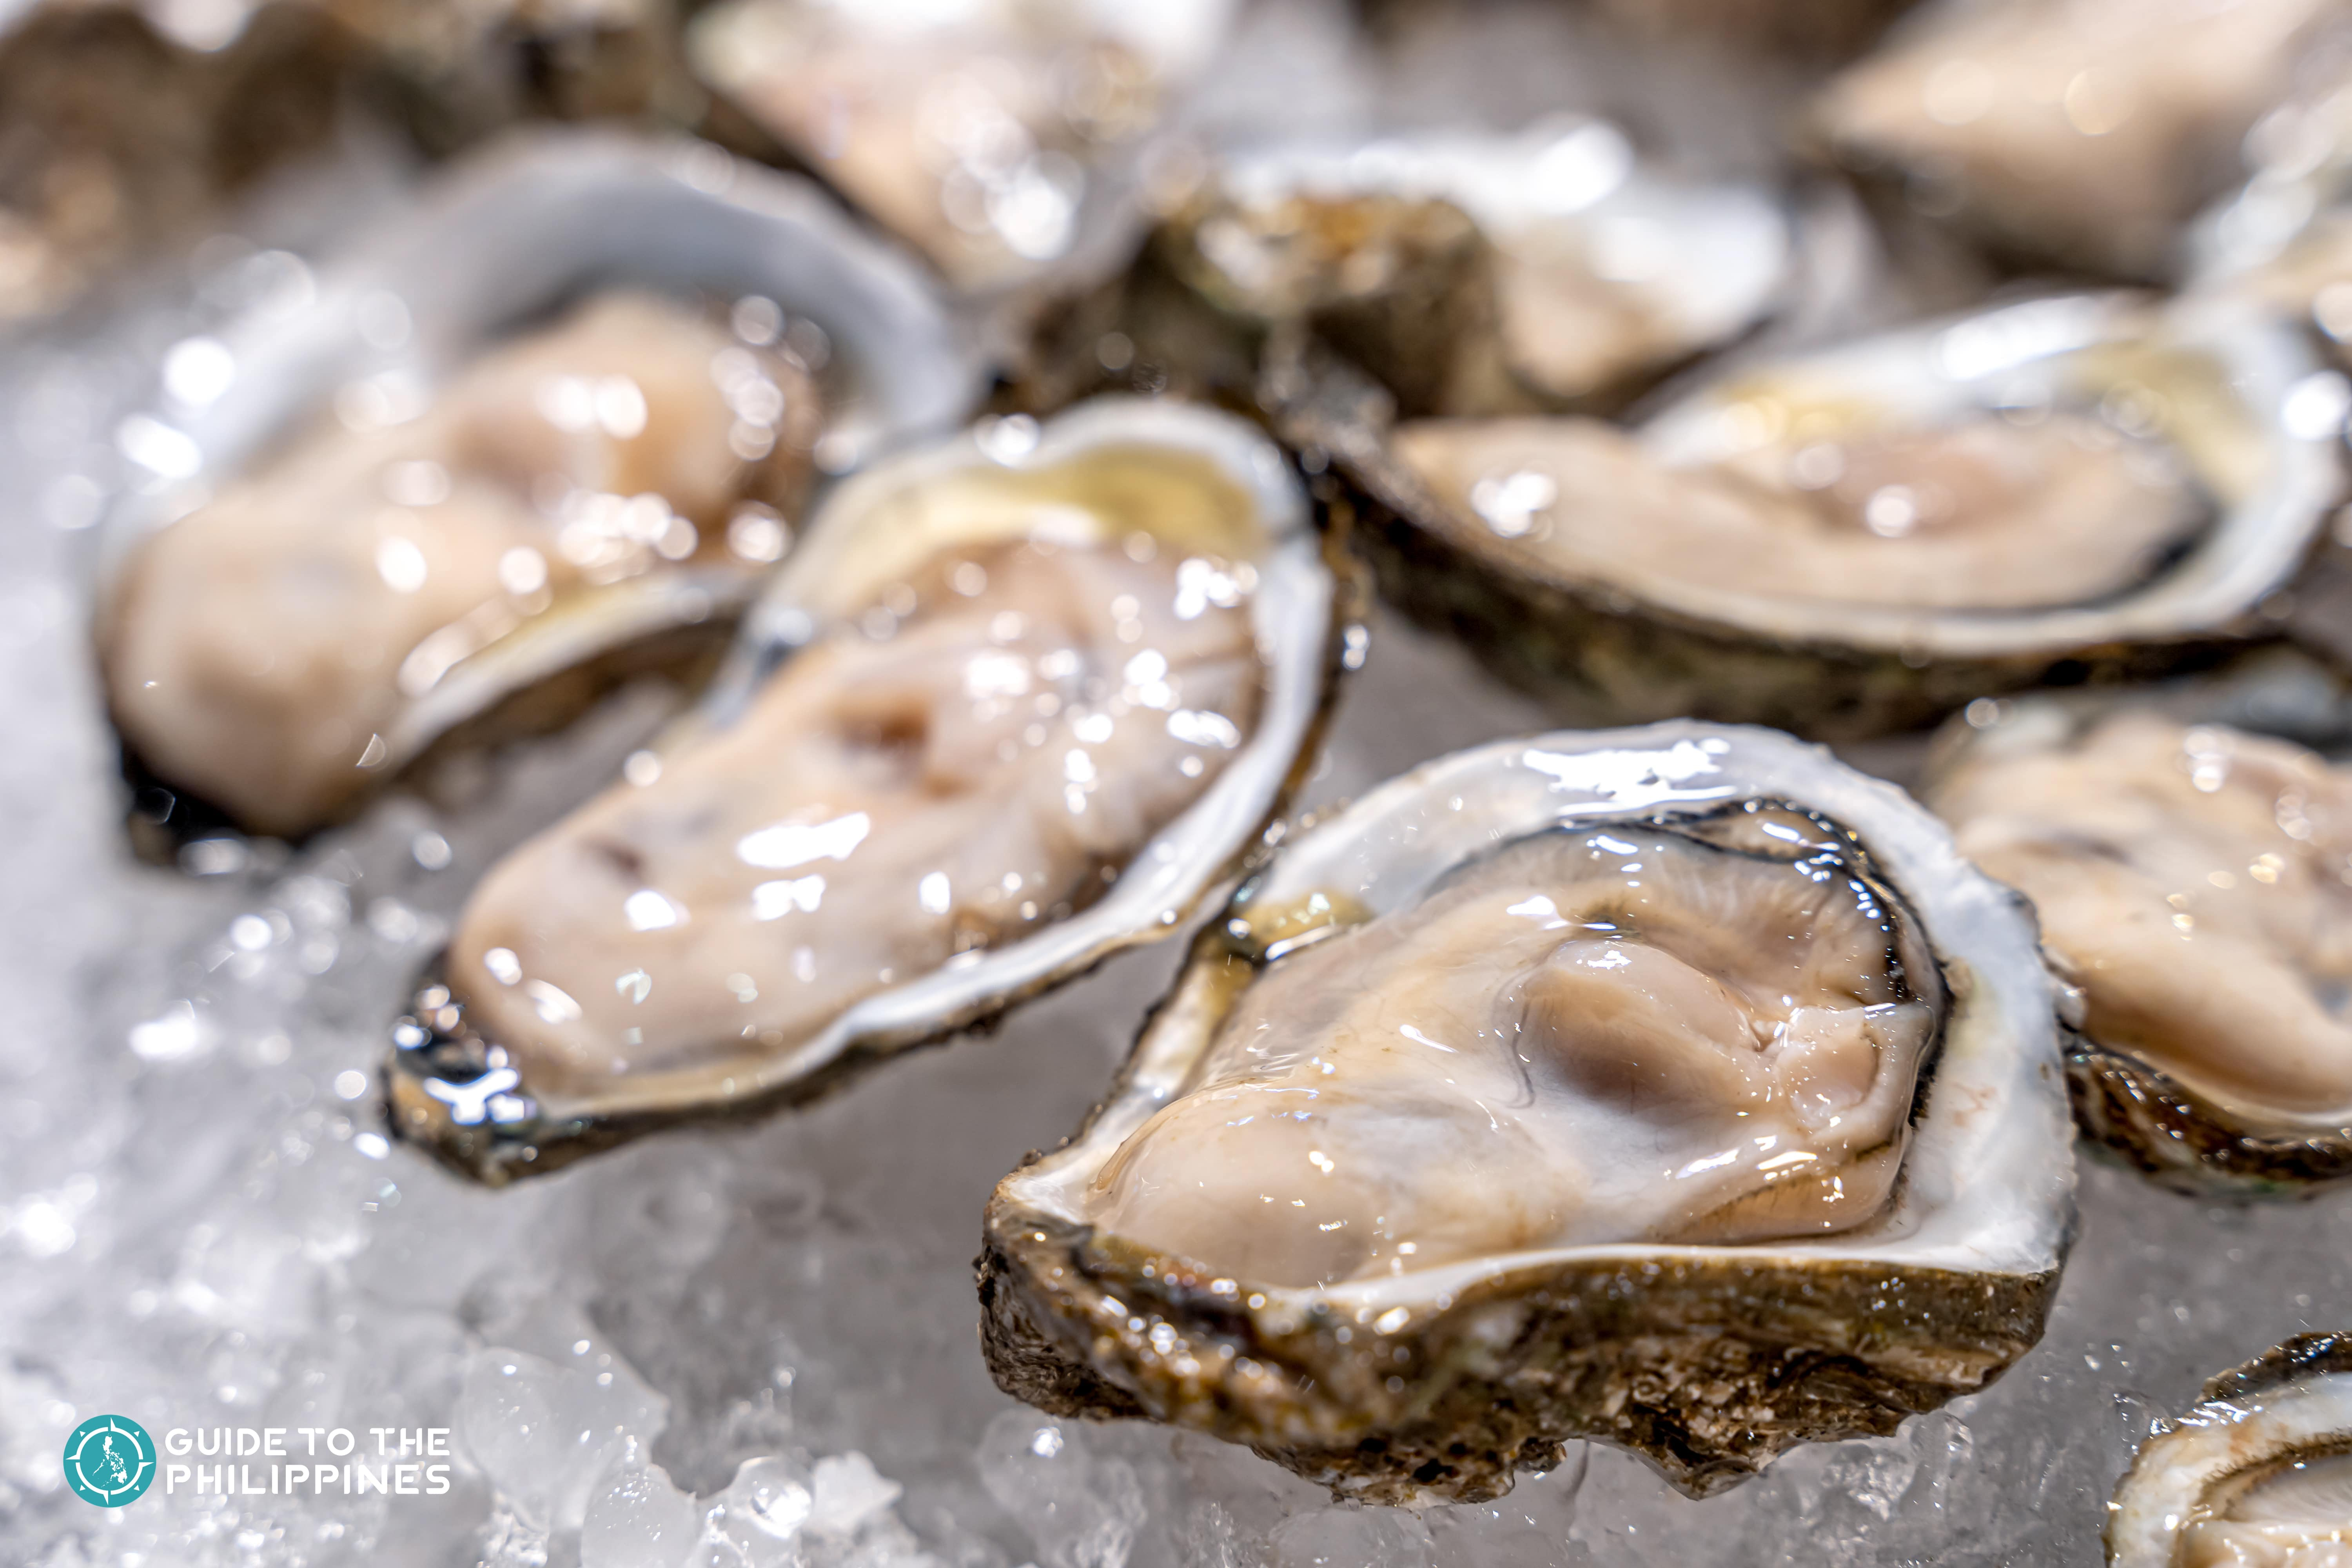 Fresh oysters from Cambuhat Oyster Farm in Bohol